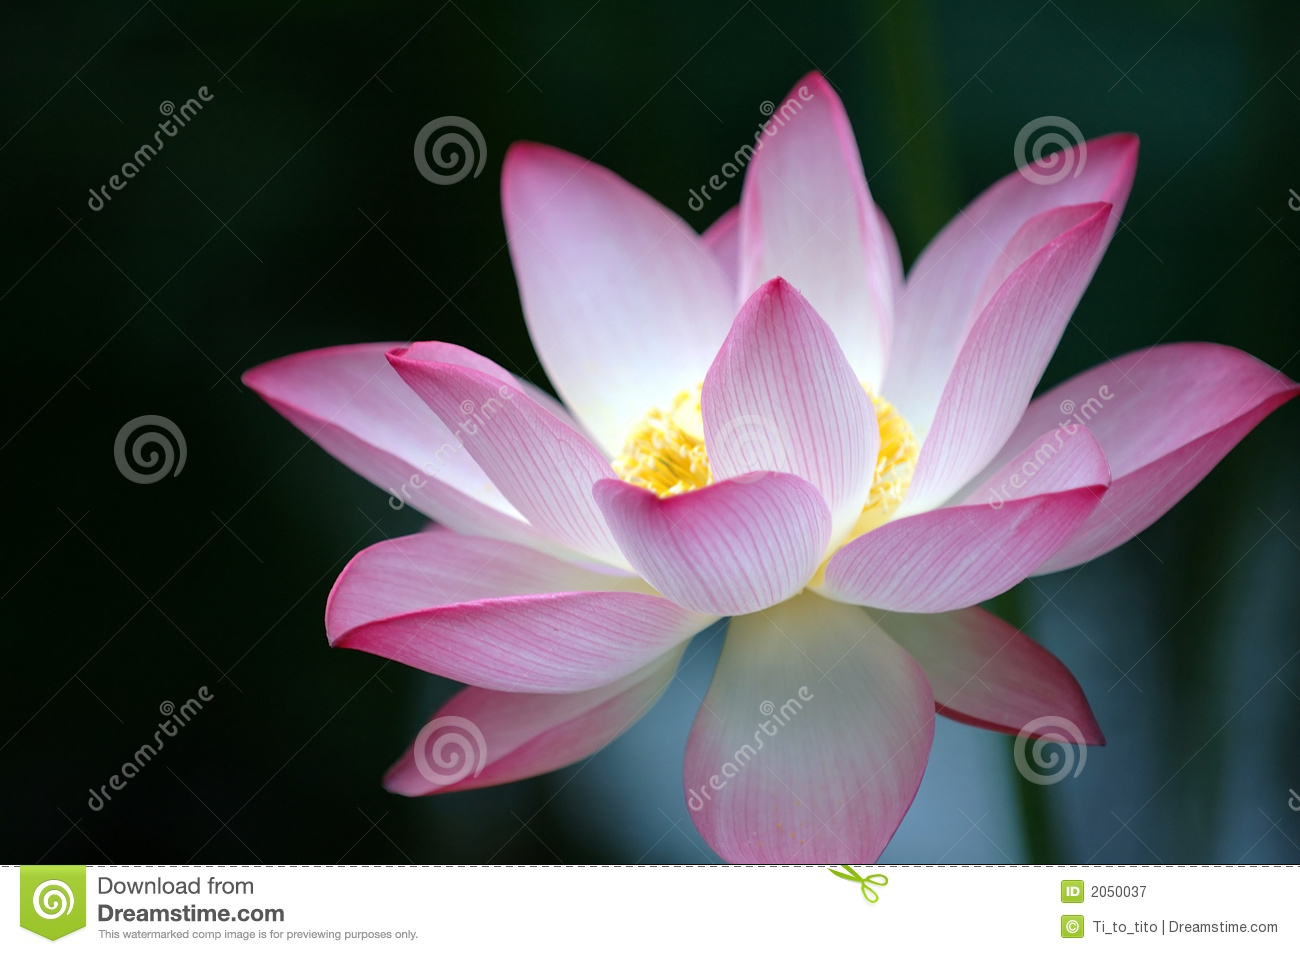 lotus flower stock photos, images,  pictures  , images, Beautiful flower